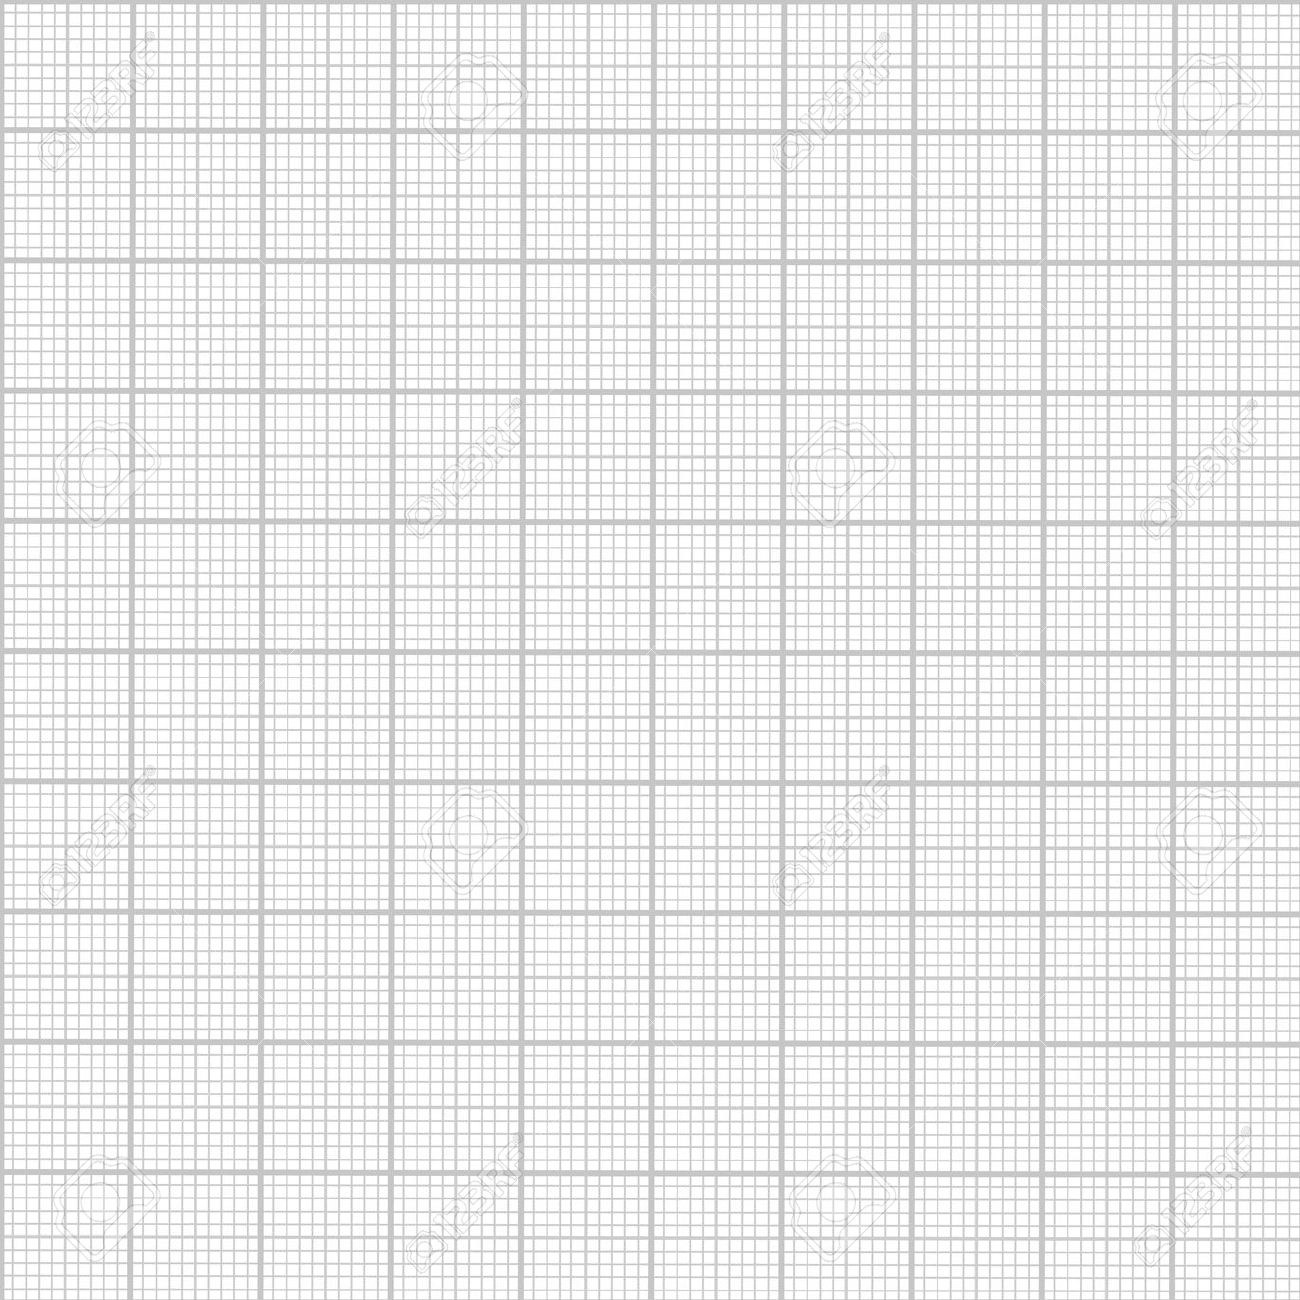 30 Grid Patterns Backgrounds Textures